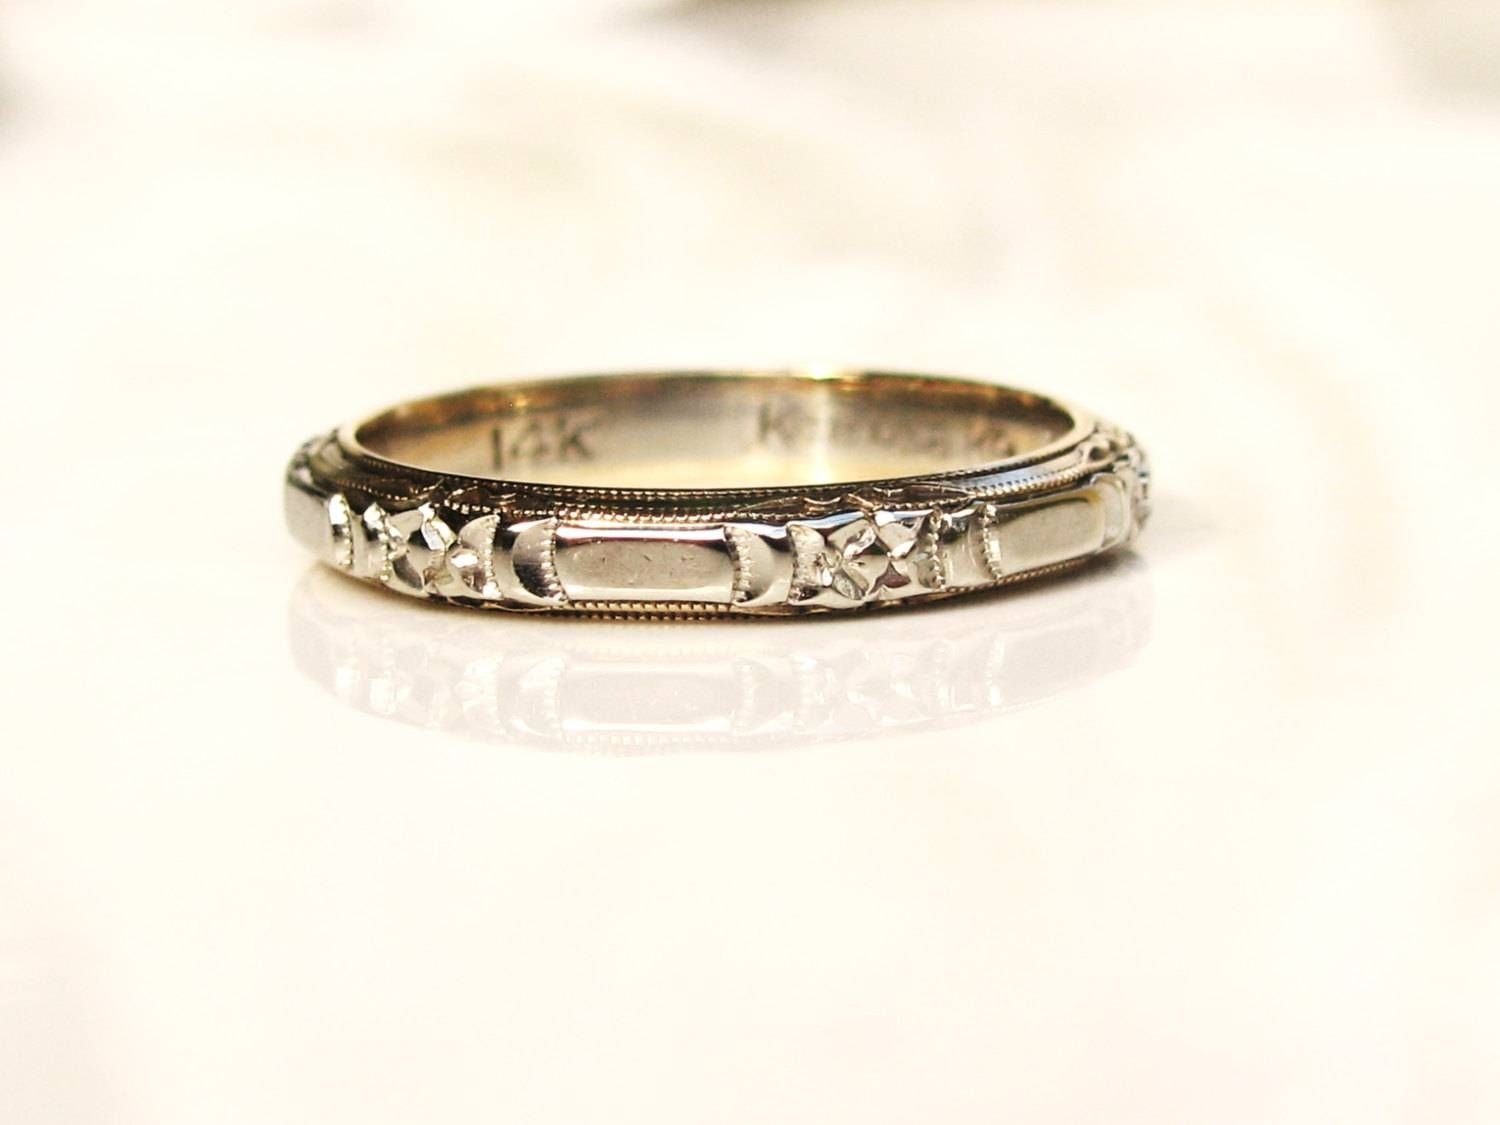 Vintage Keepsake Wedding Ring 14k White Gold Floral Design With Keepsake Wedding Bands (View 15 of 15)